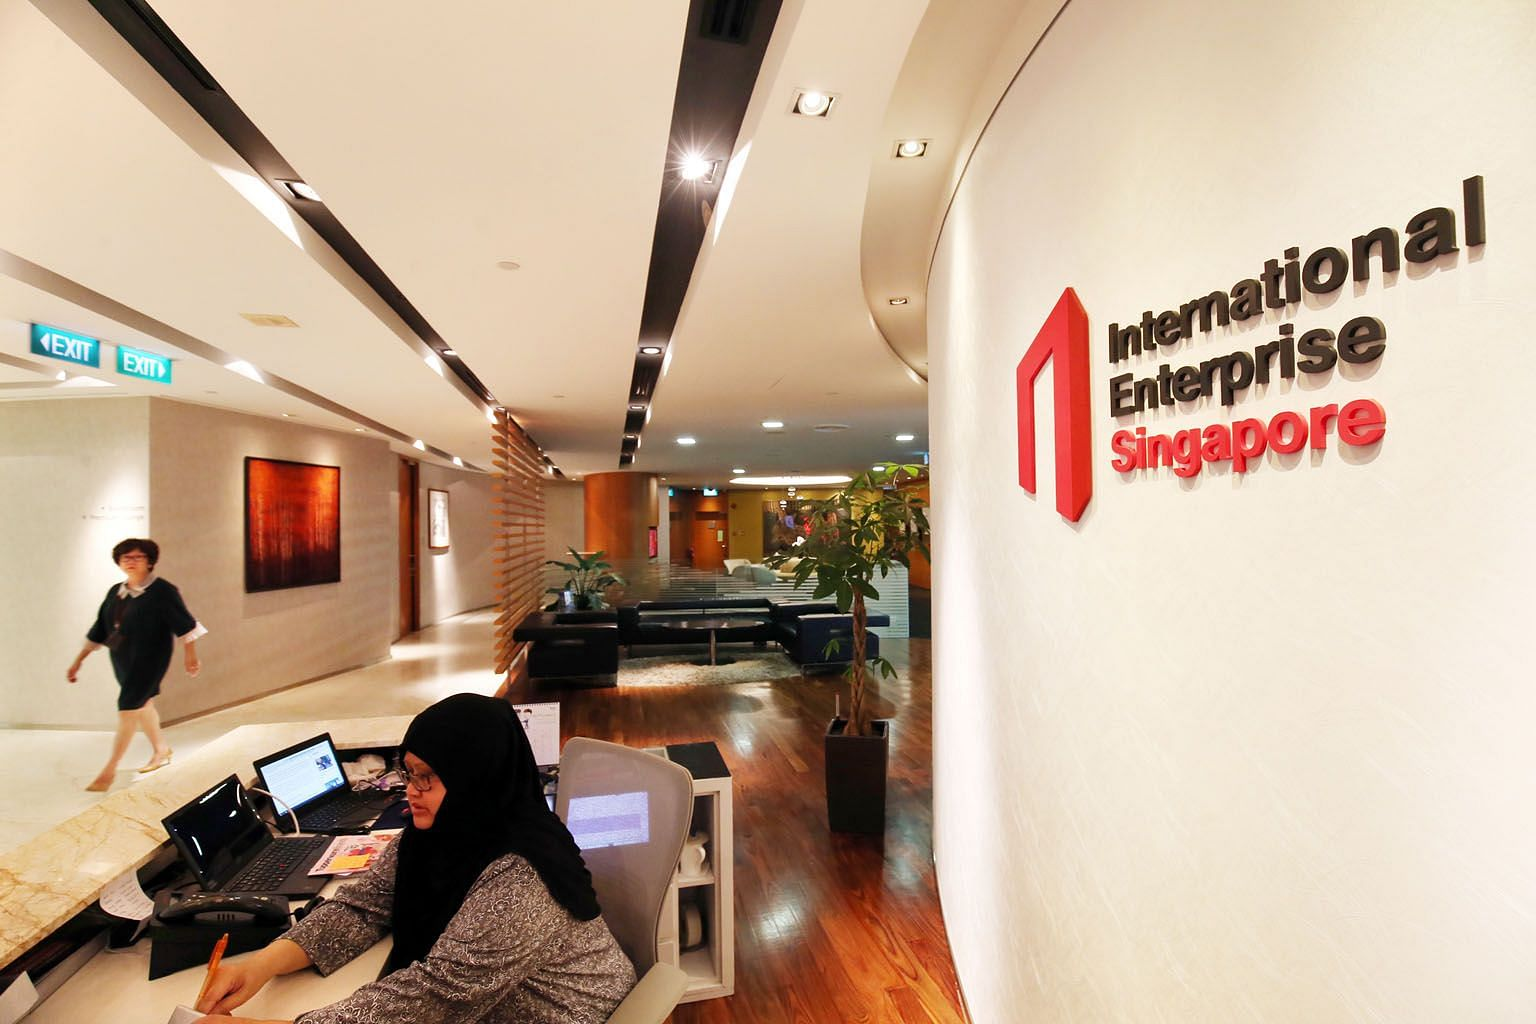 Economist Teh Kok Peng believes that the merger of Spring and IE Singapore into Enterprise Singapore, which took effect on April 1, will help in Singapore's regionalisation push.